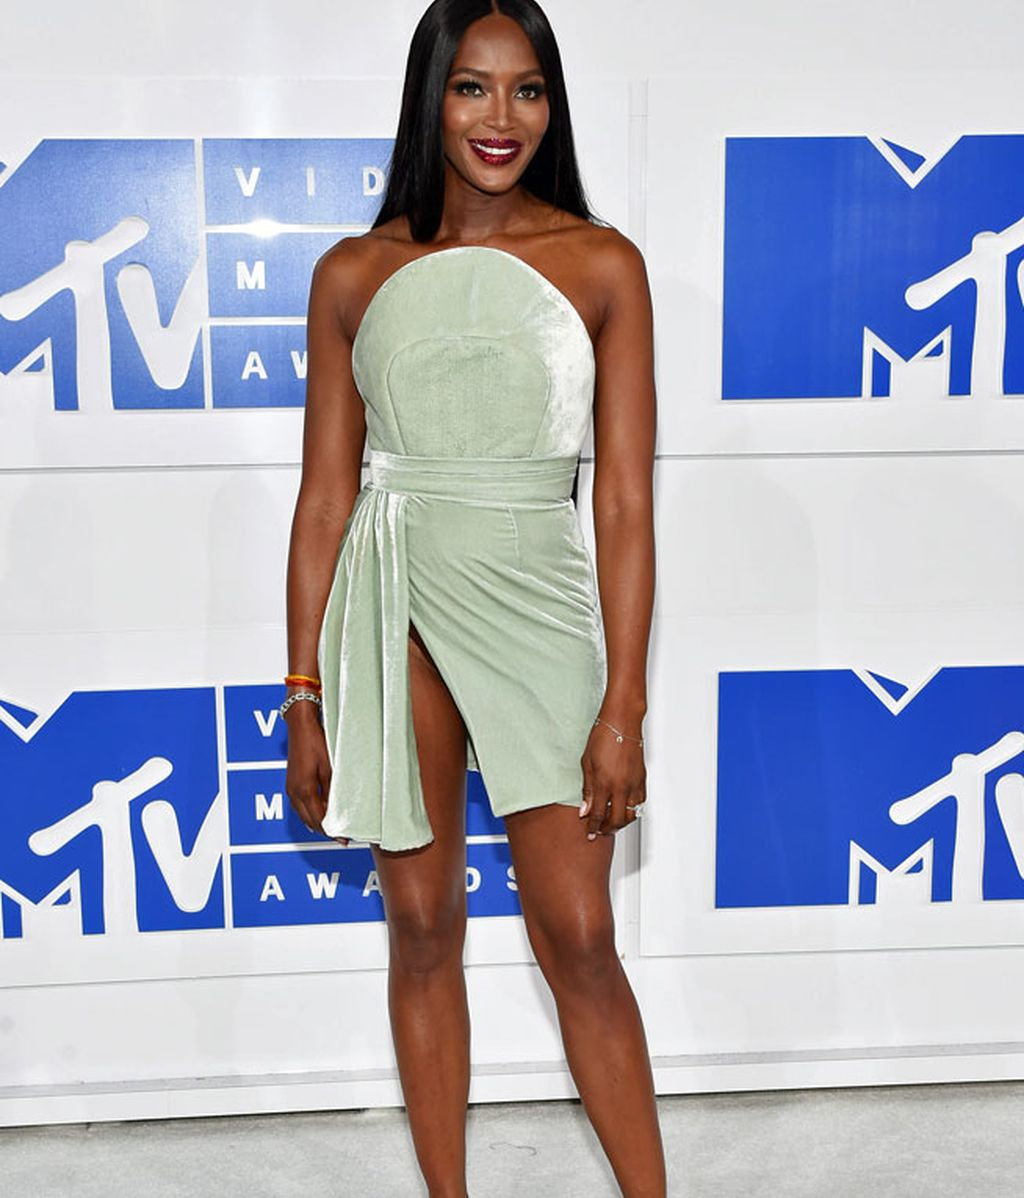 Naomi Campbell en los 'MTV MVA' en Madison Square